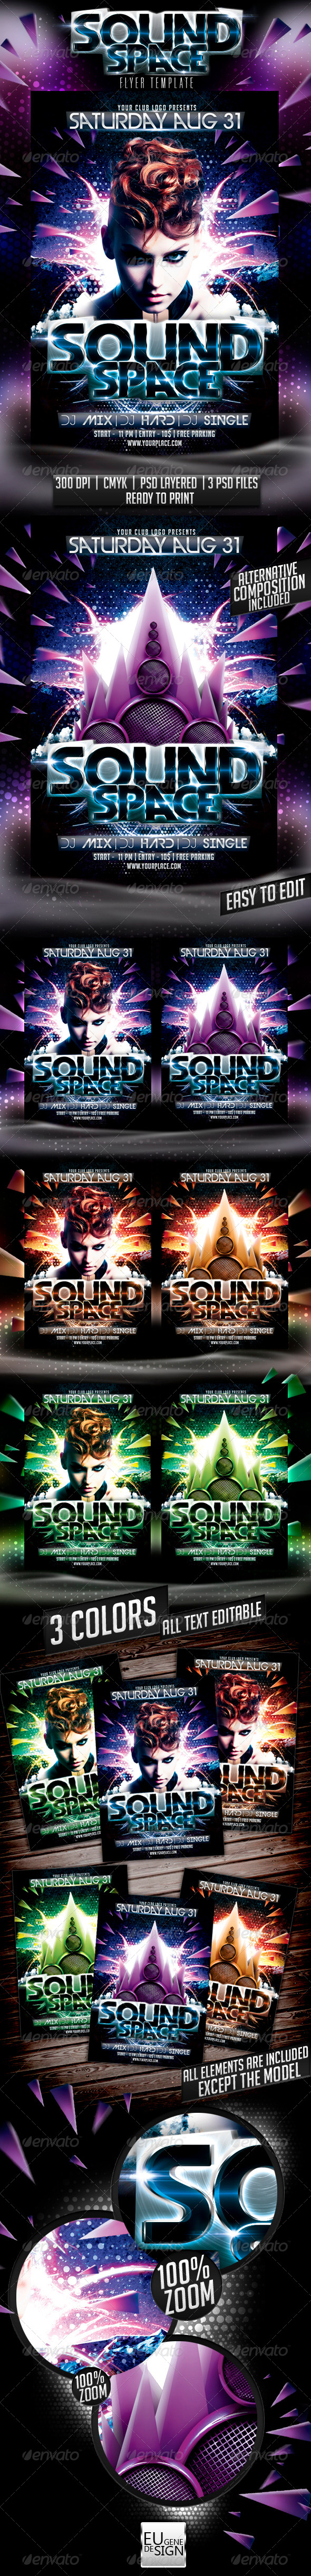 Sound Space Flyer Template - Clubs & Parties Events